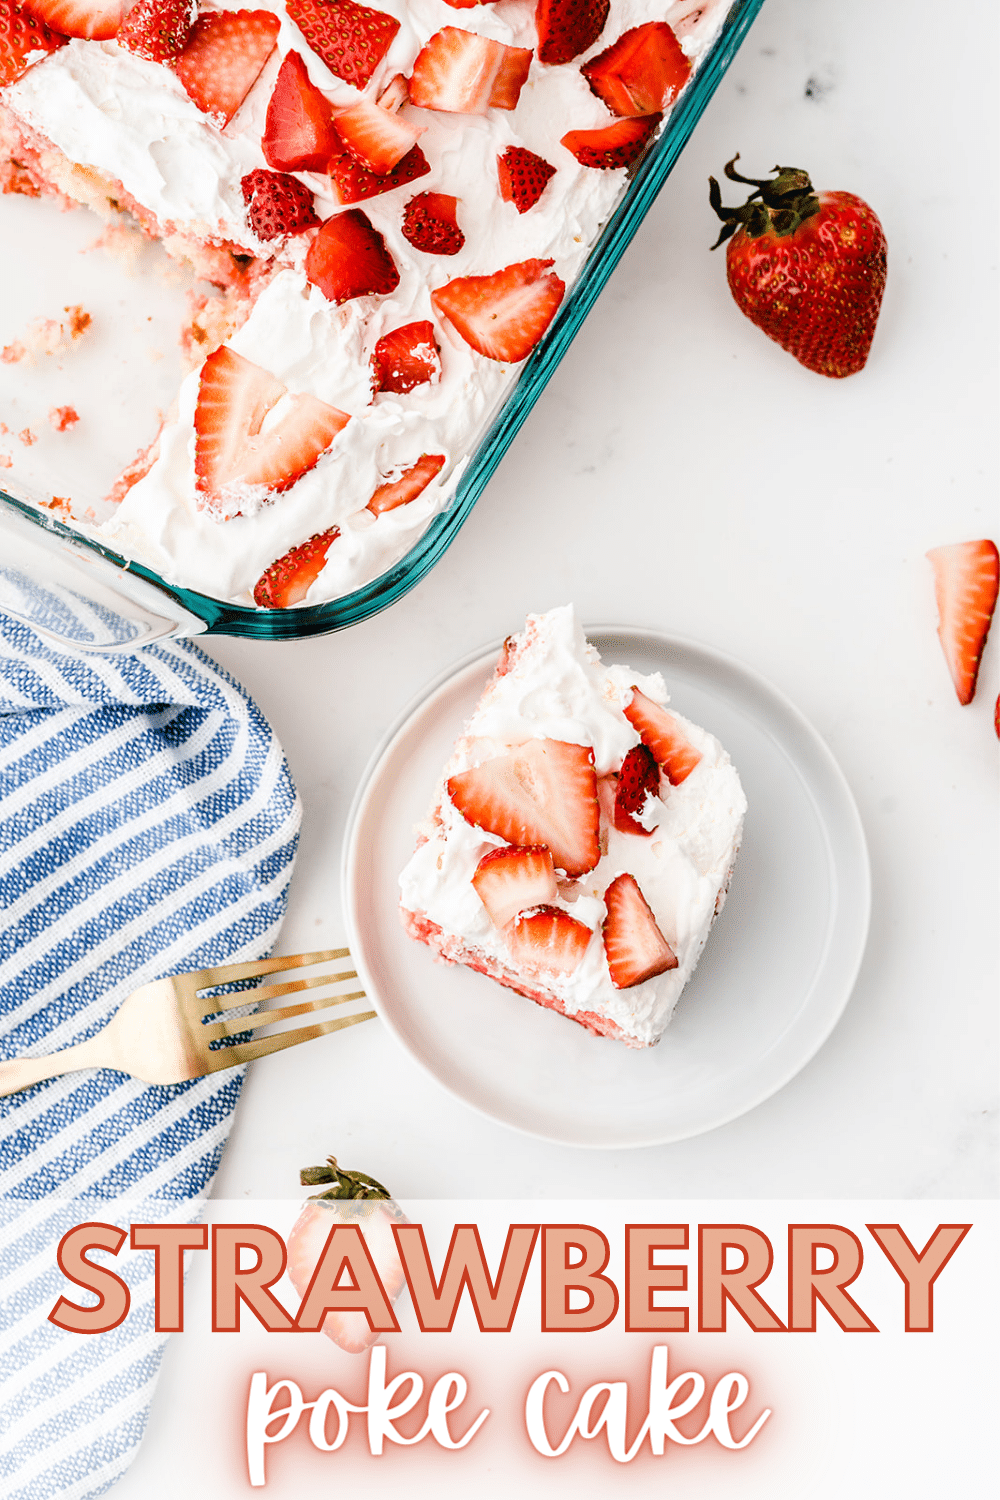 Strawberry poke cake is a perfect dessert for gatherings with family or friends. They will love you even more once they get a bite #cake #dessert #recipe #strawberrypokecake #pokecake via @wondermomwannab